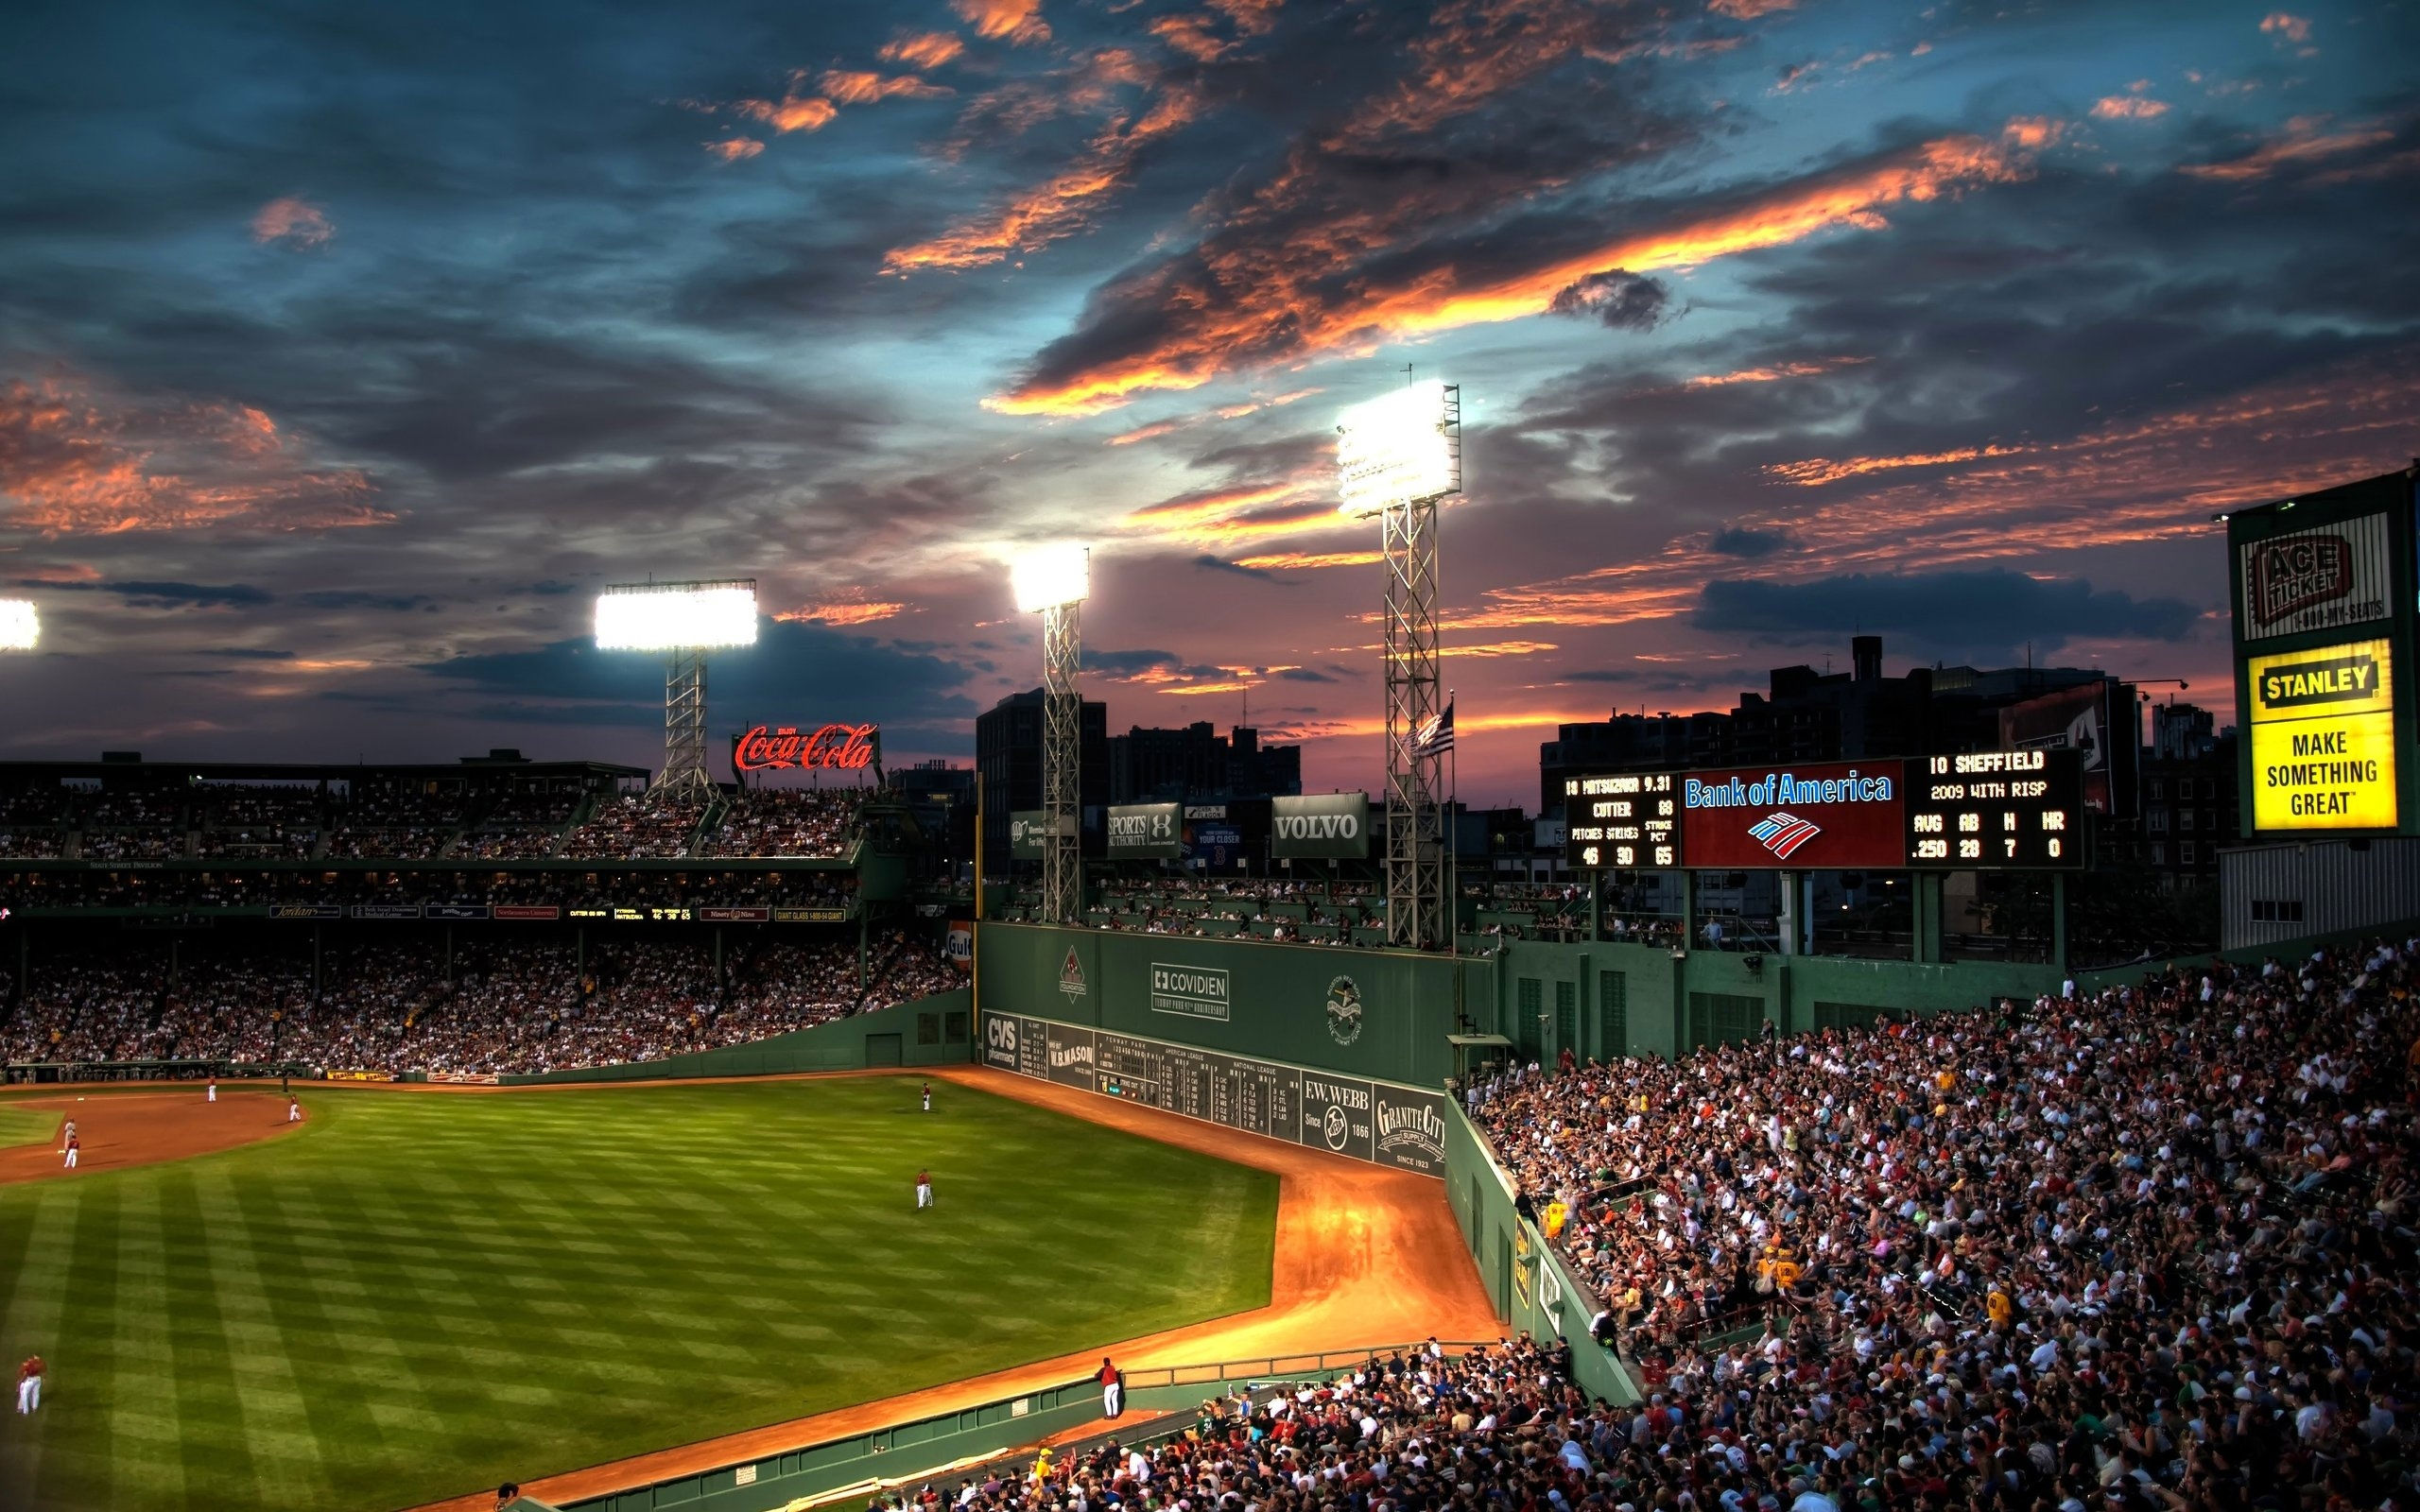 2560x1600 - Boston Red Sox Wallpaper Screensavers 15